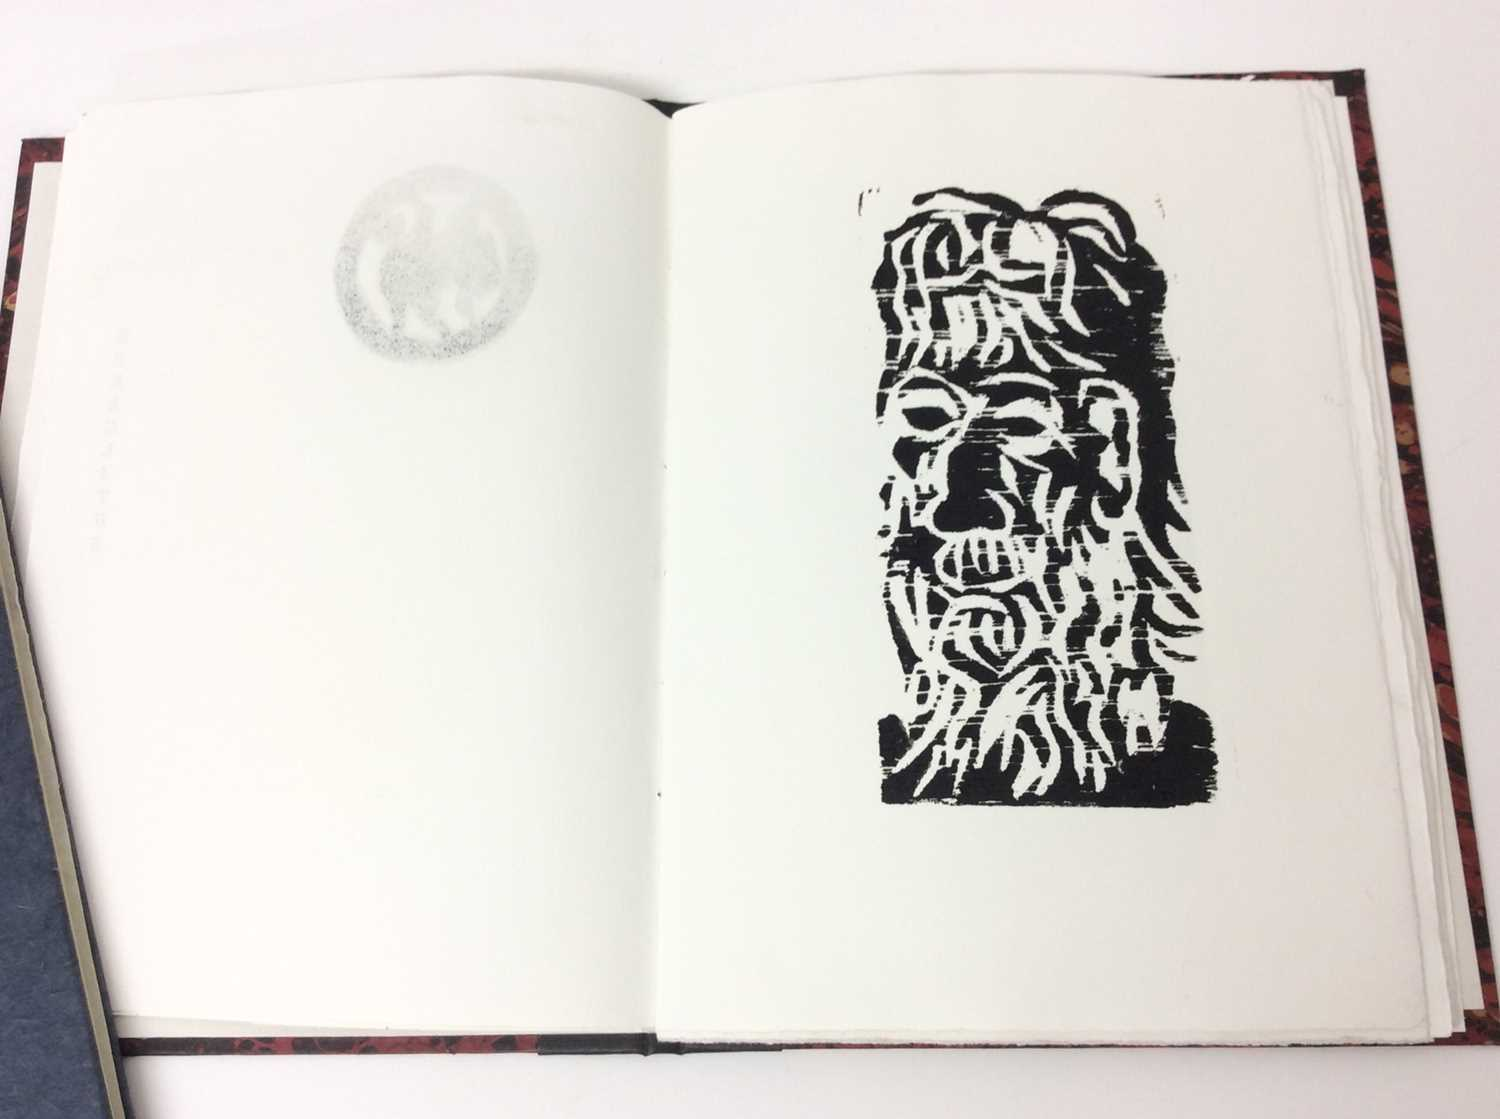 P. J. Jackson - three very limited edition private publications - Image 6 of 11